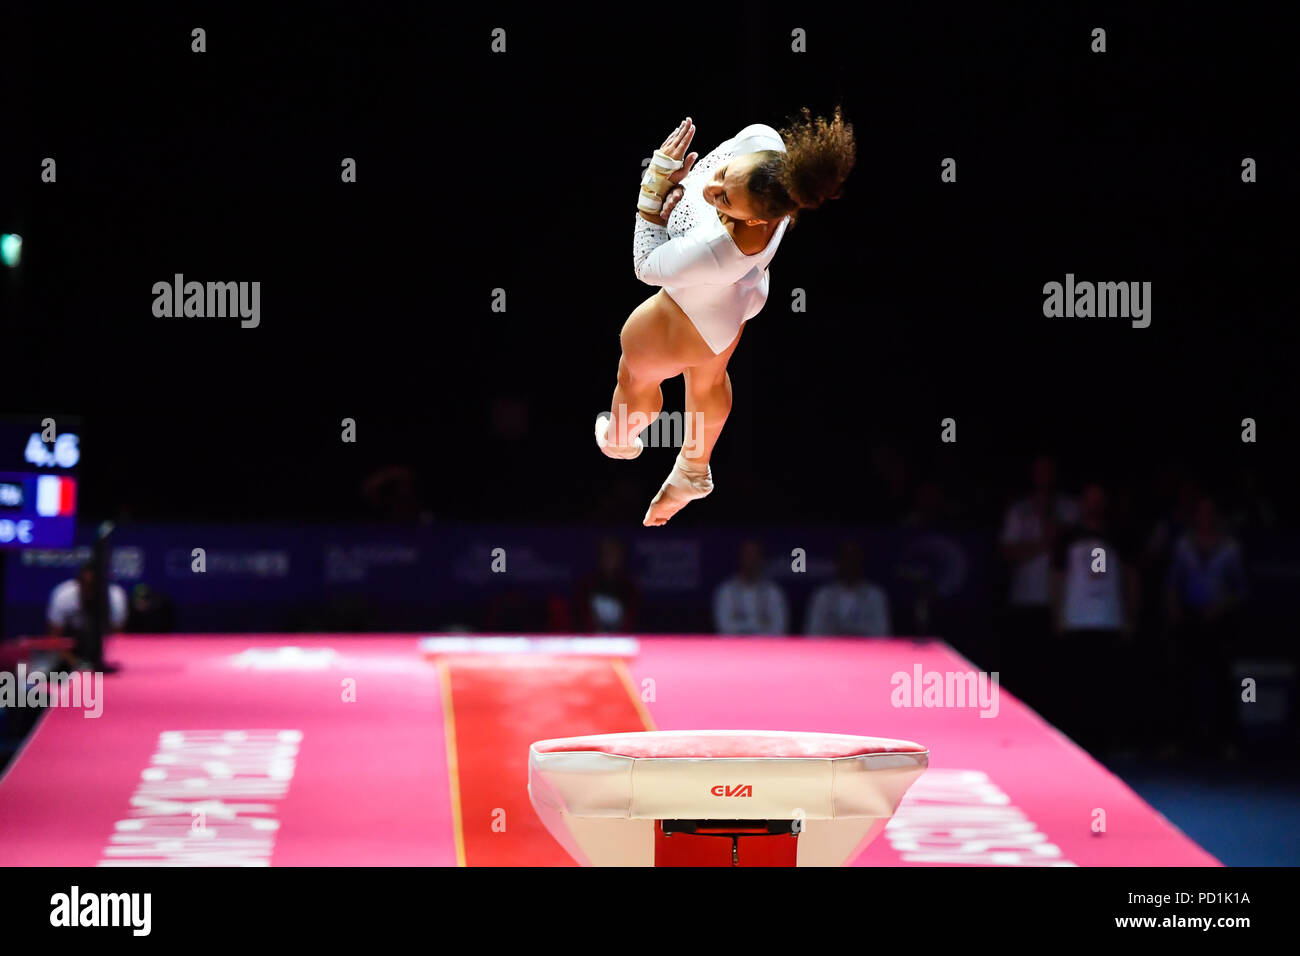 DEVILLARD Coline (FRA) competes on the Vault in Women's Artistic Gymnastics Apparatus  Finals during the European Championships Glasgow 2018 at The SSE Hydro on Sunday, 05 August 2018. GLASGOW SCOTLAND . Credit: Taka G Wu - Stock Image